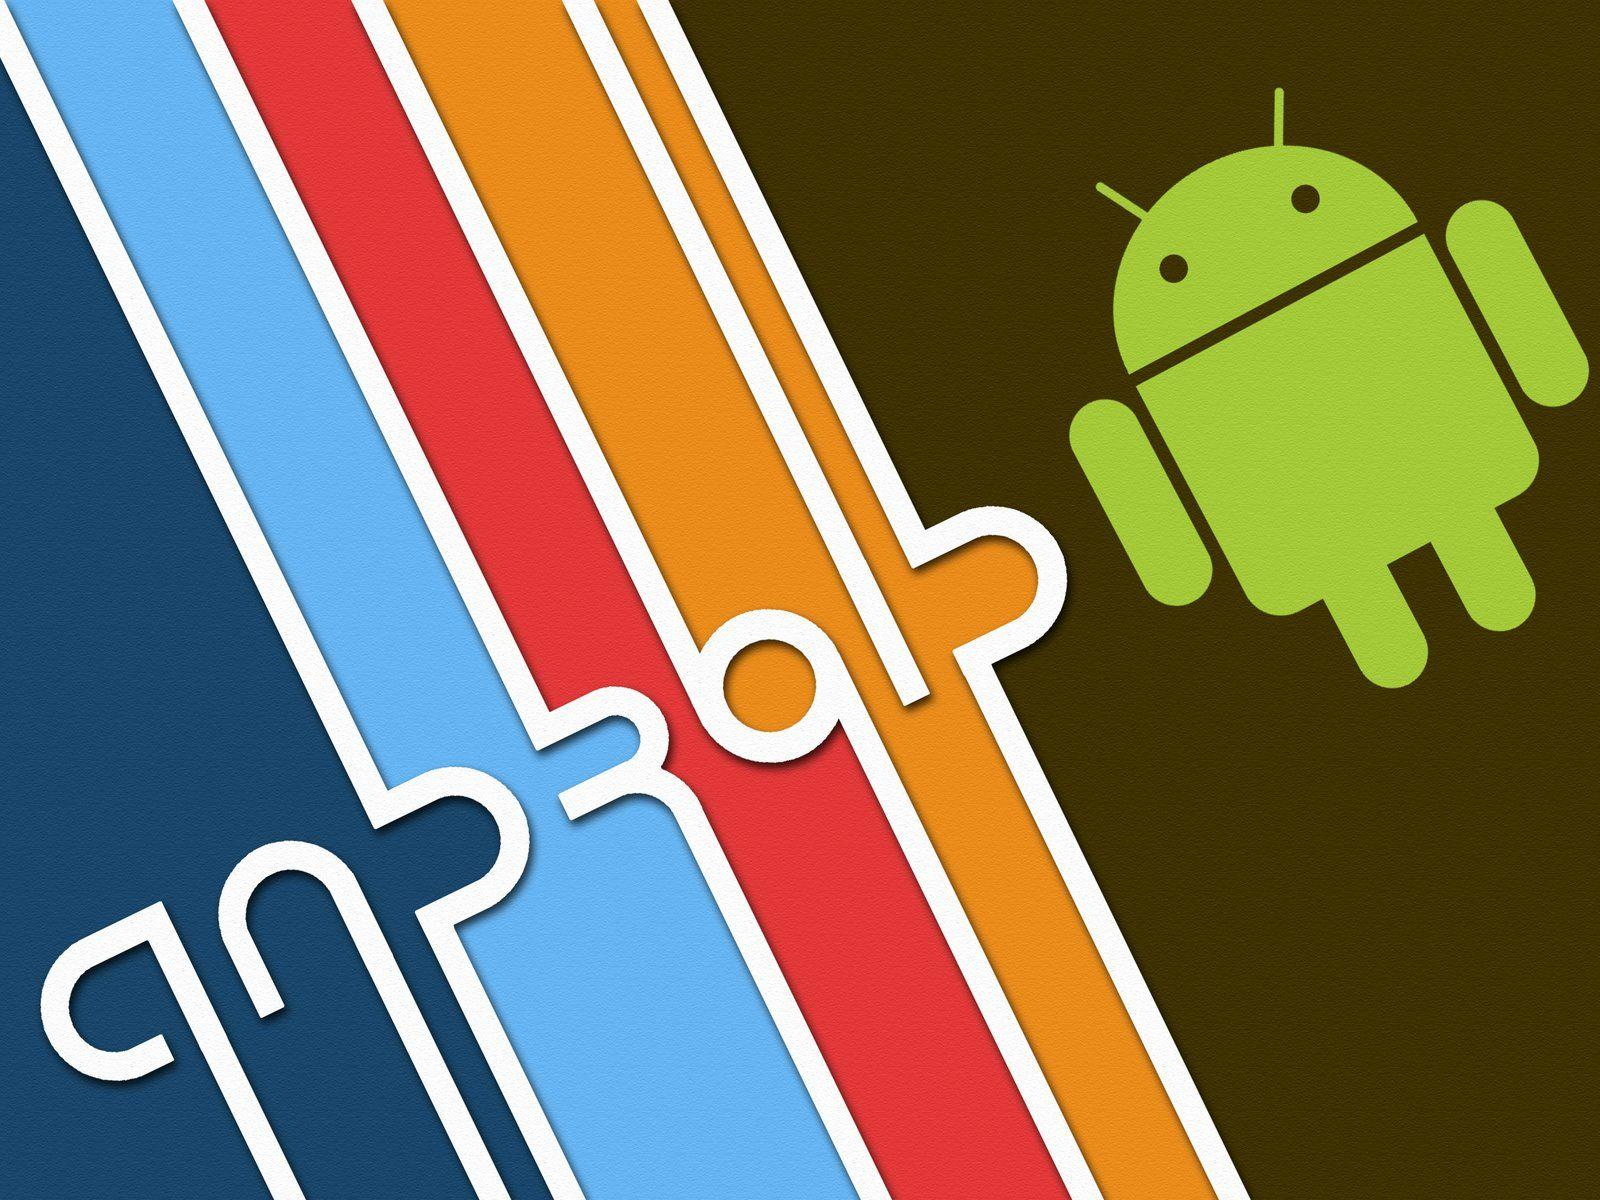 Fearsome Android Logo Black Hd Wallpapers 1920x1080PX ~ Andriod ...